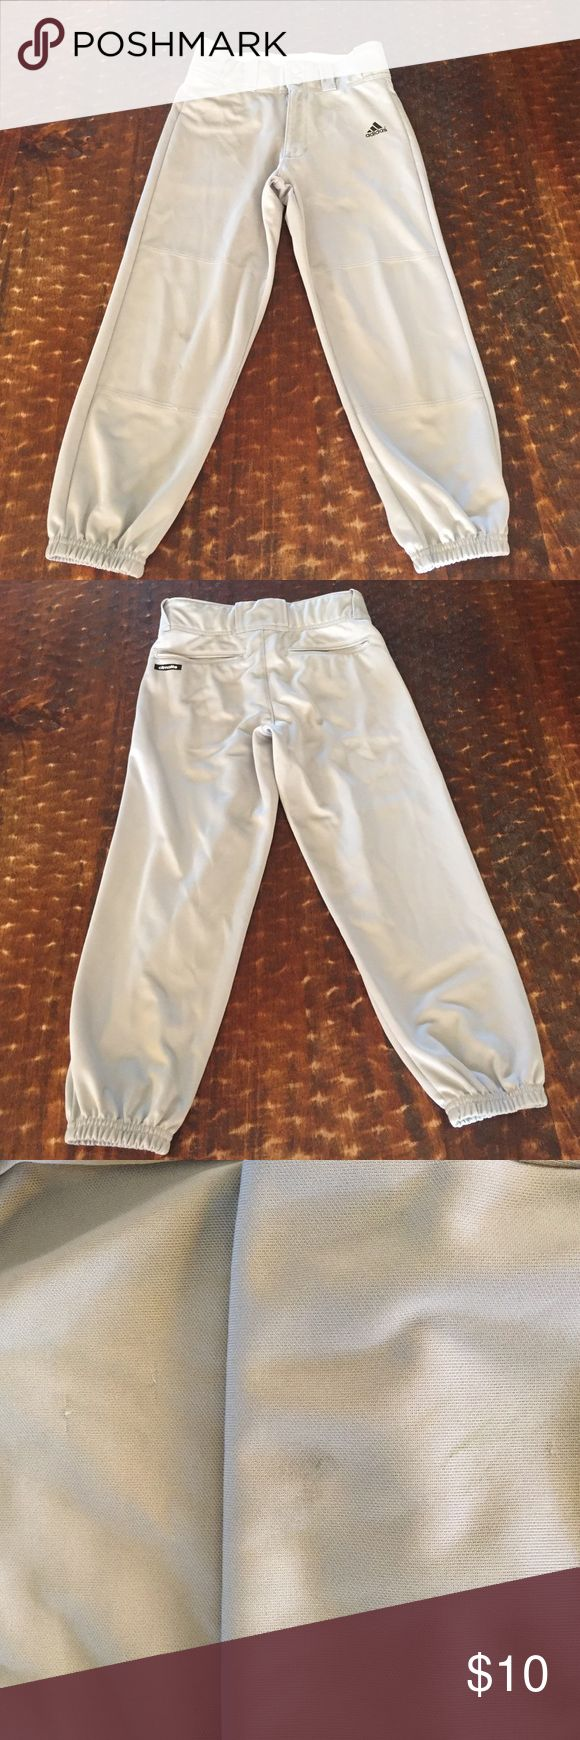 Adidas baseball pants, size S Adidas baseball pants, size S, a small stain on the knee and a place where a thread or two came out (see 3rd pic) but otherwise good used condition! Adidas Bottoms